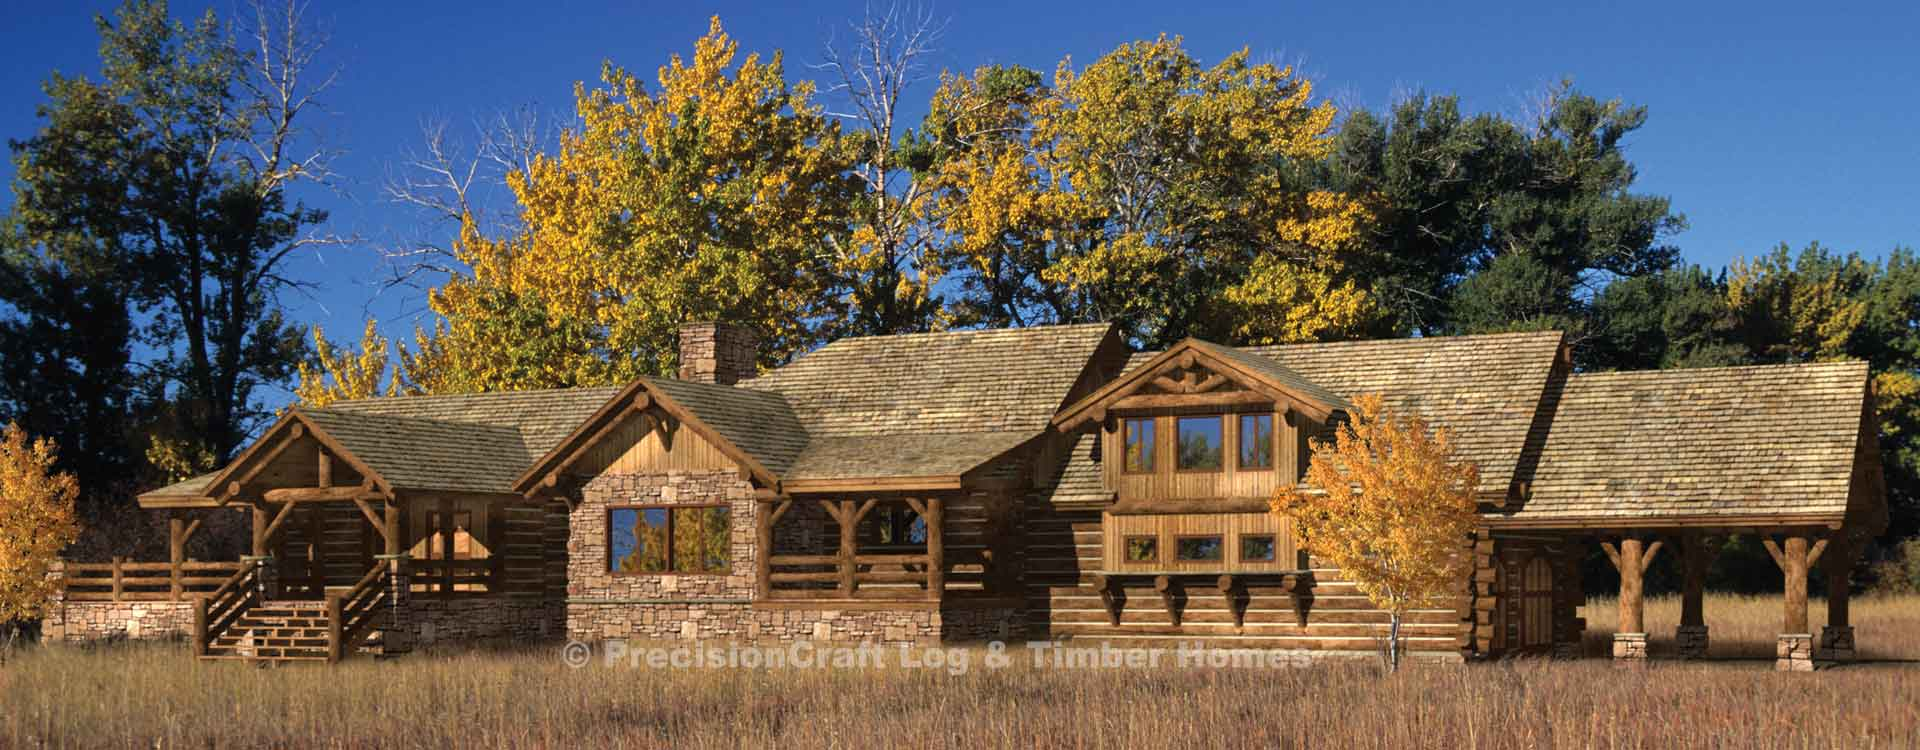 Prairie Hill Log Home Rendering